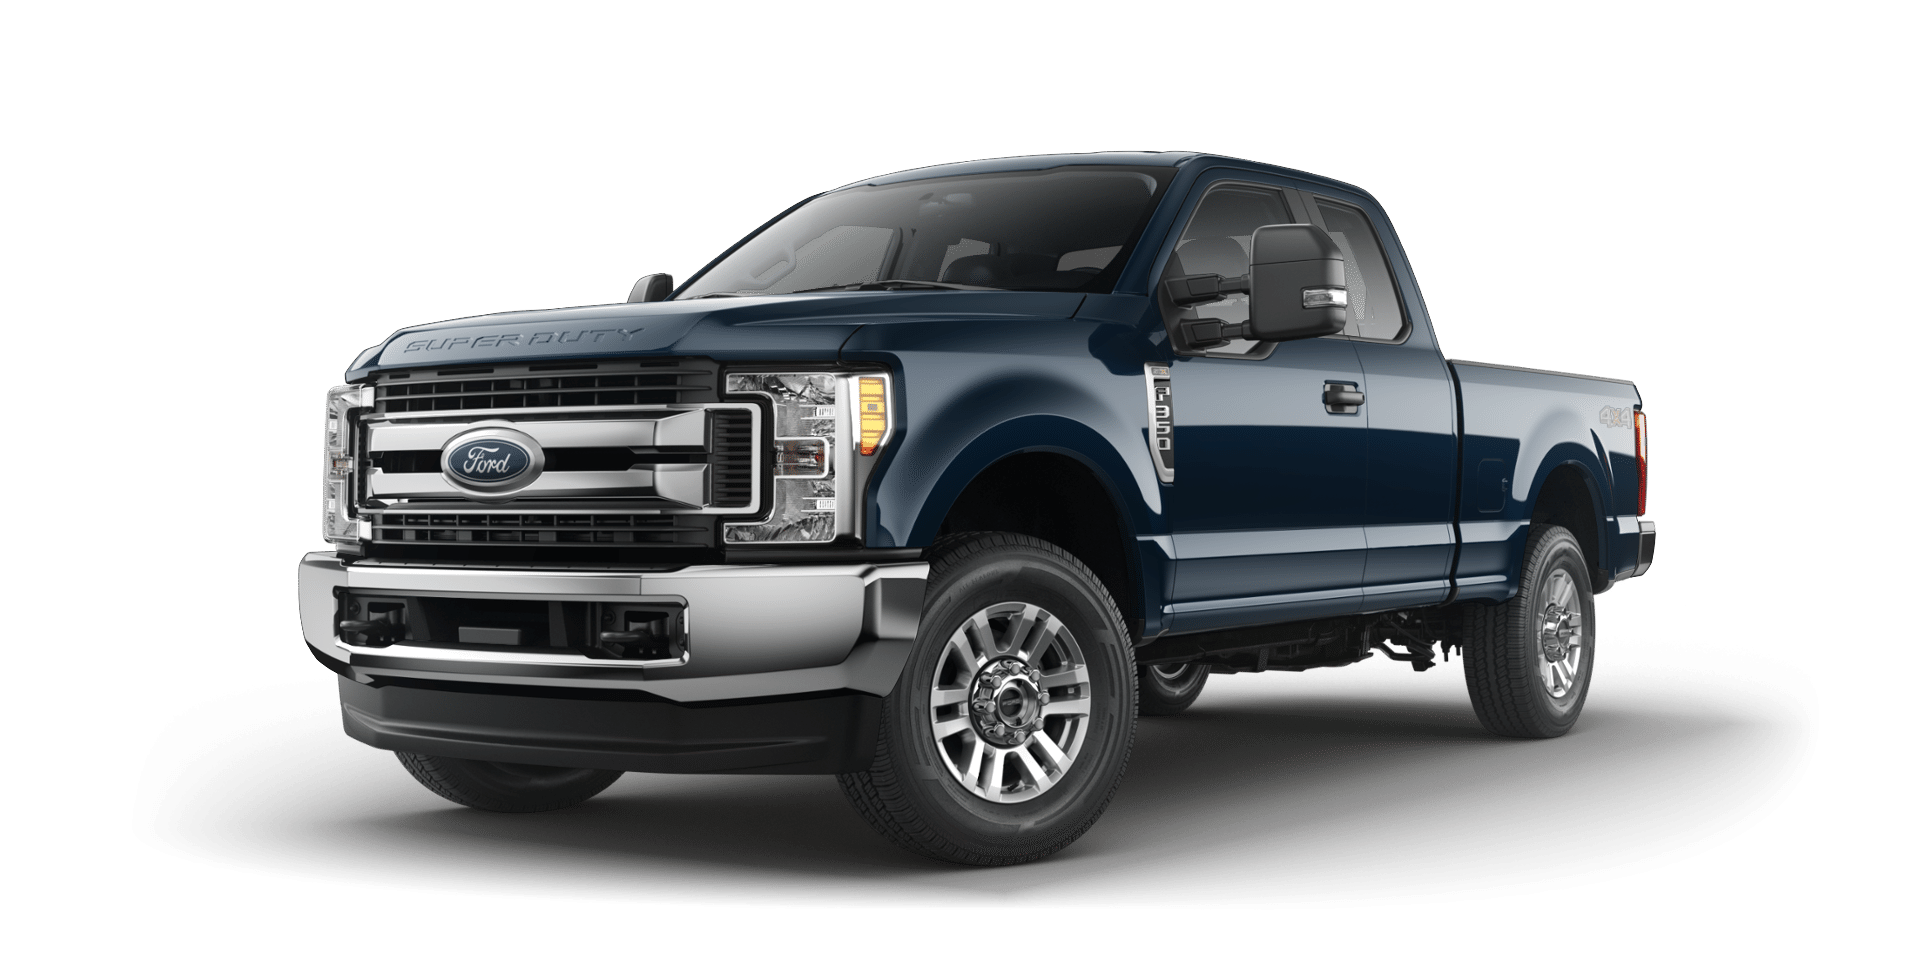 2017 Ford F350 Simplified But Super Capable Well Under 50k With